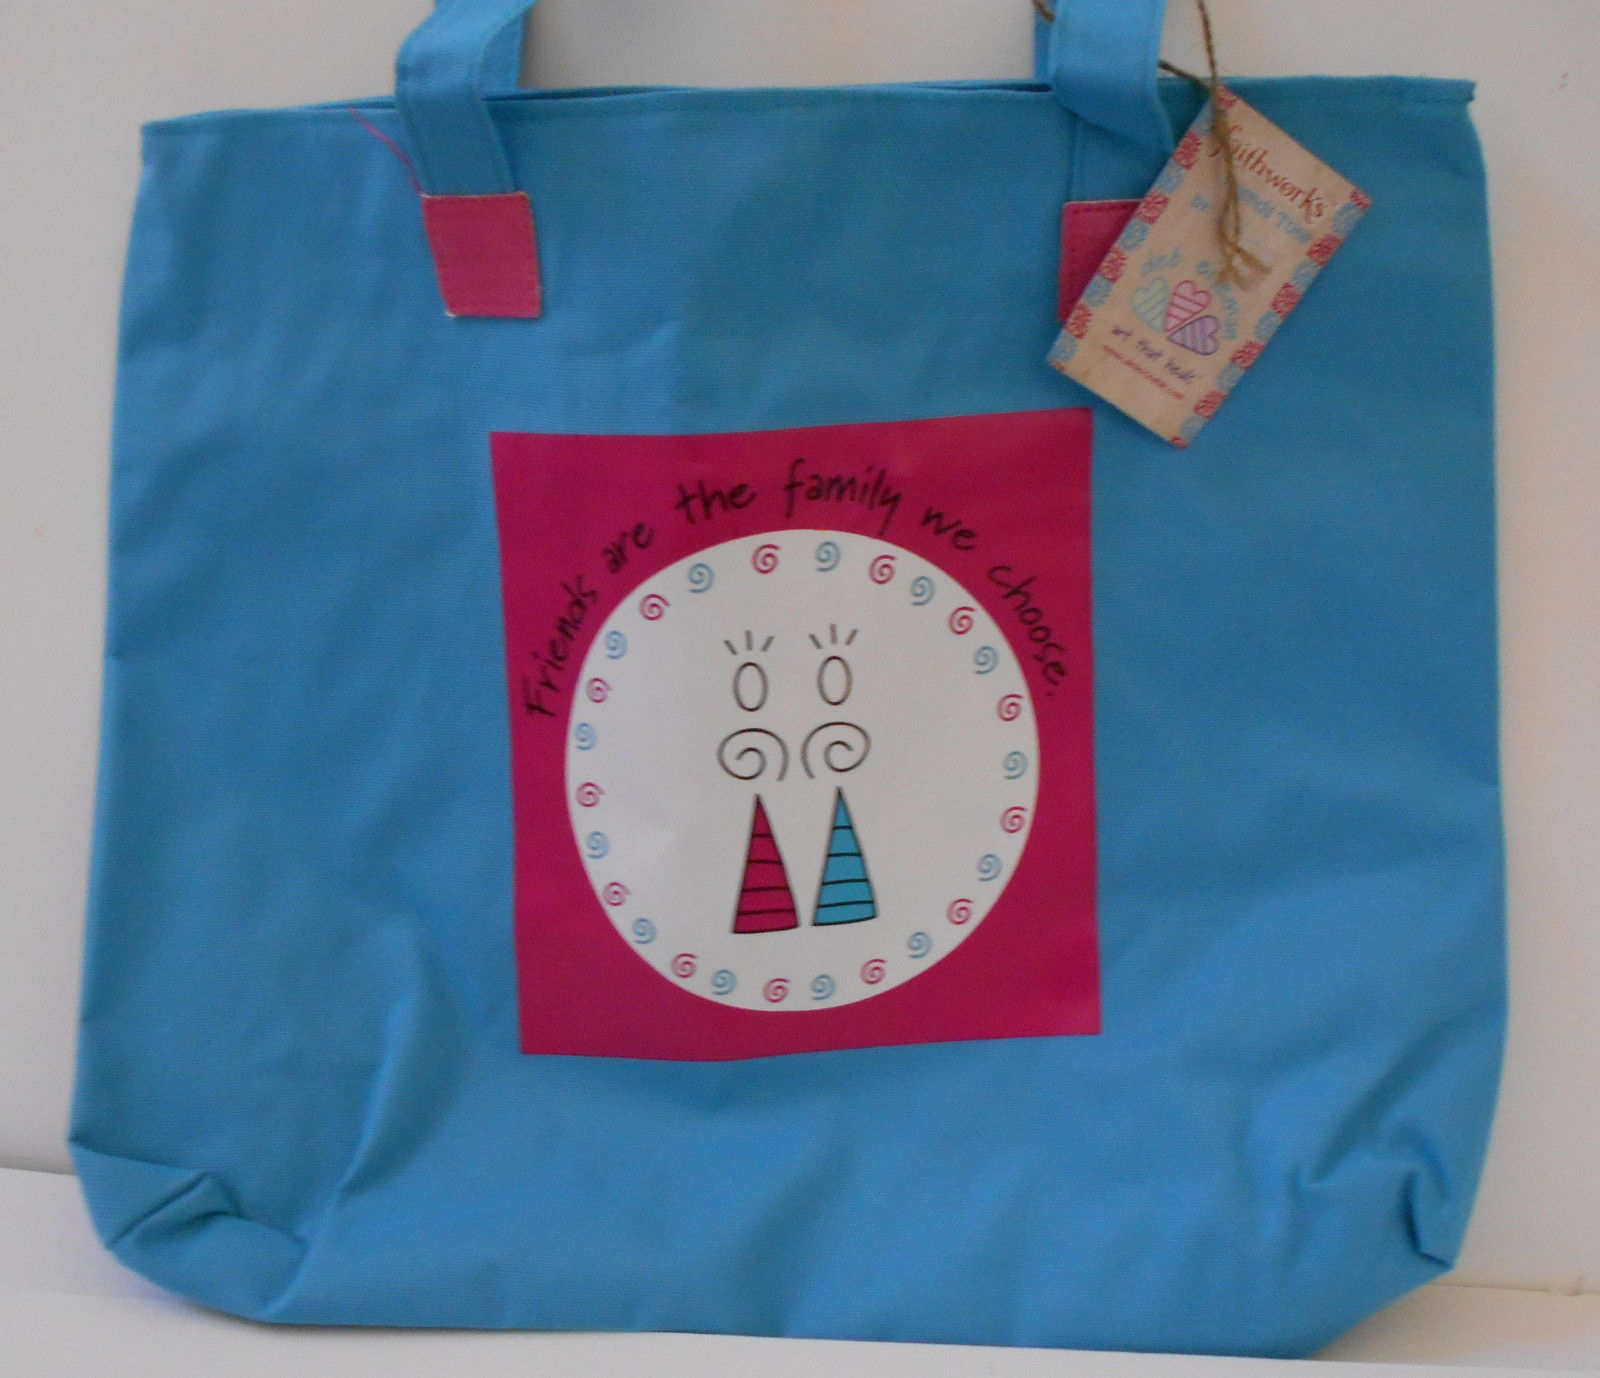 86b3c42a30a6 Tote Bag Blue Pink Faithworks Deb Eismen and 50 similar items